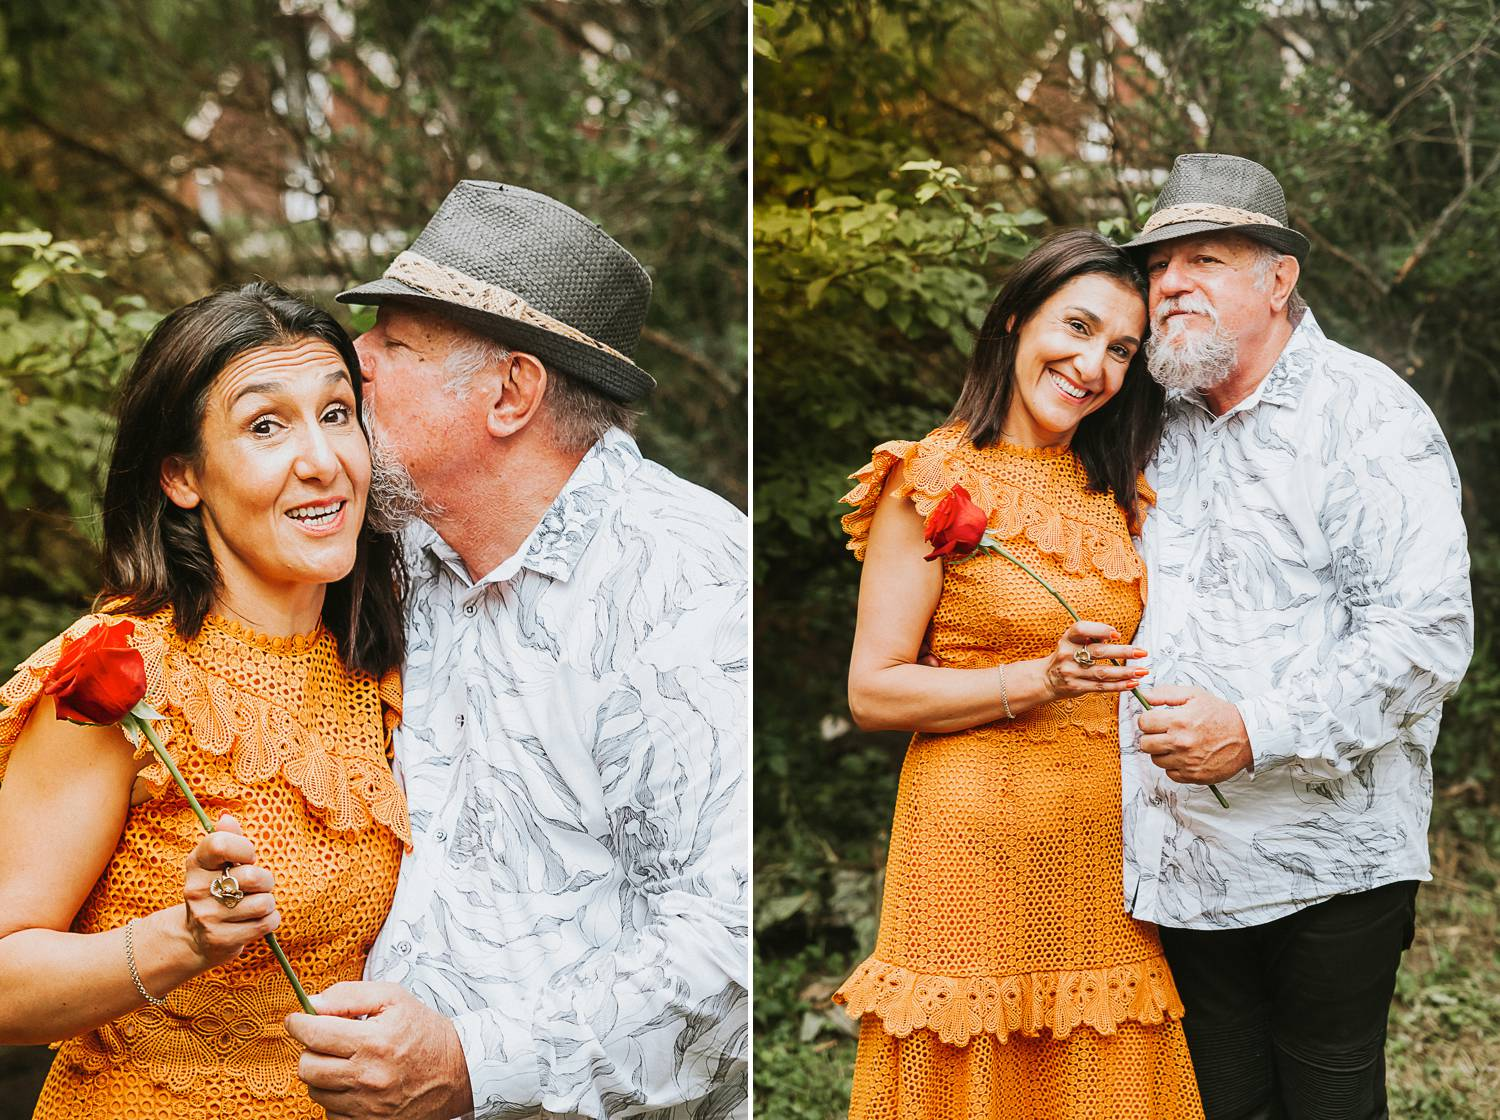 A woman in a tangerine dress snuggles close with a bearded man wearing a gray hat